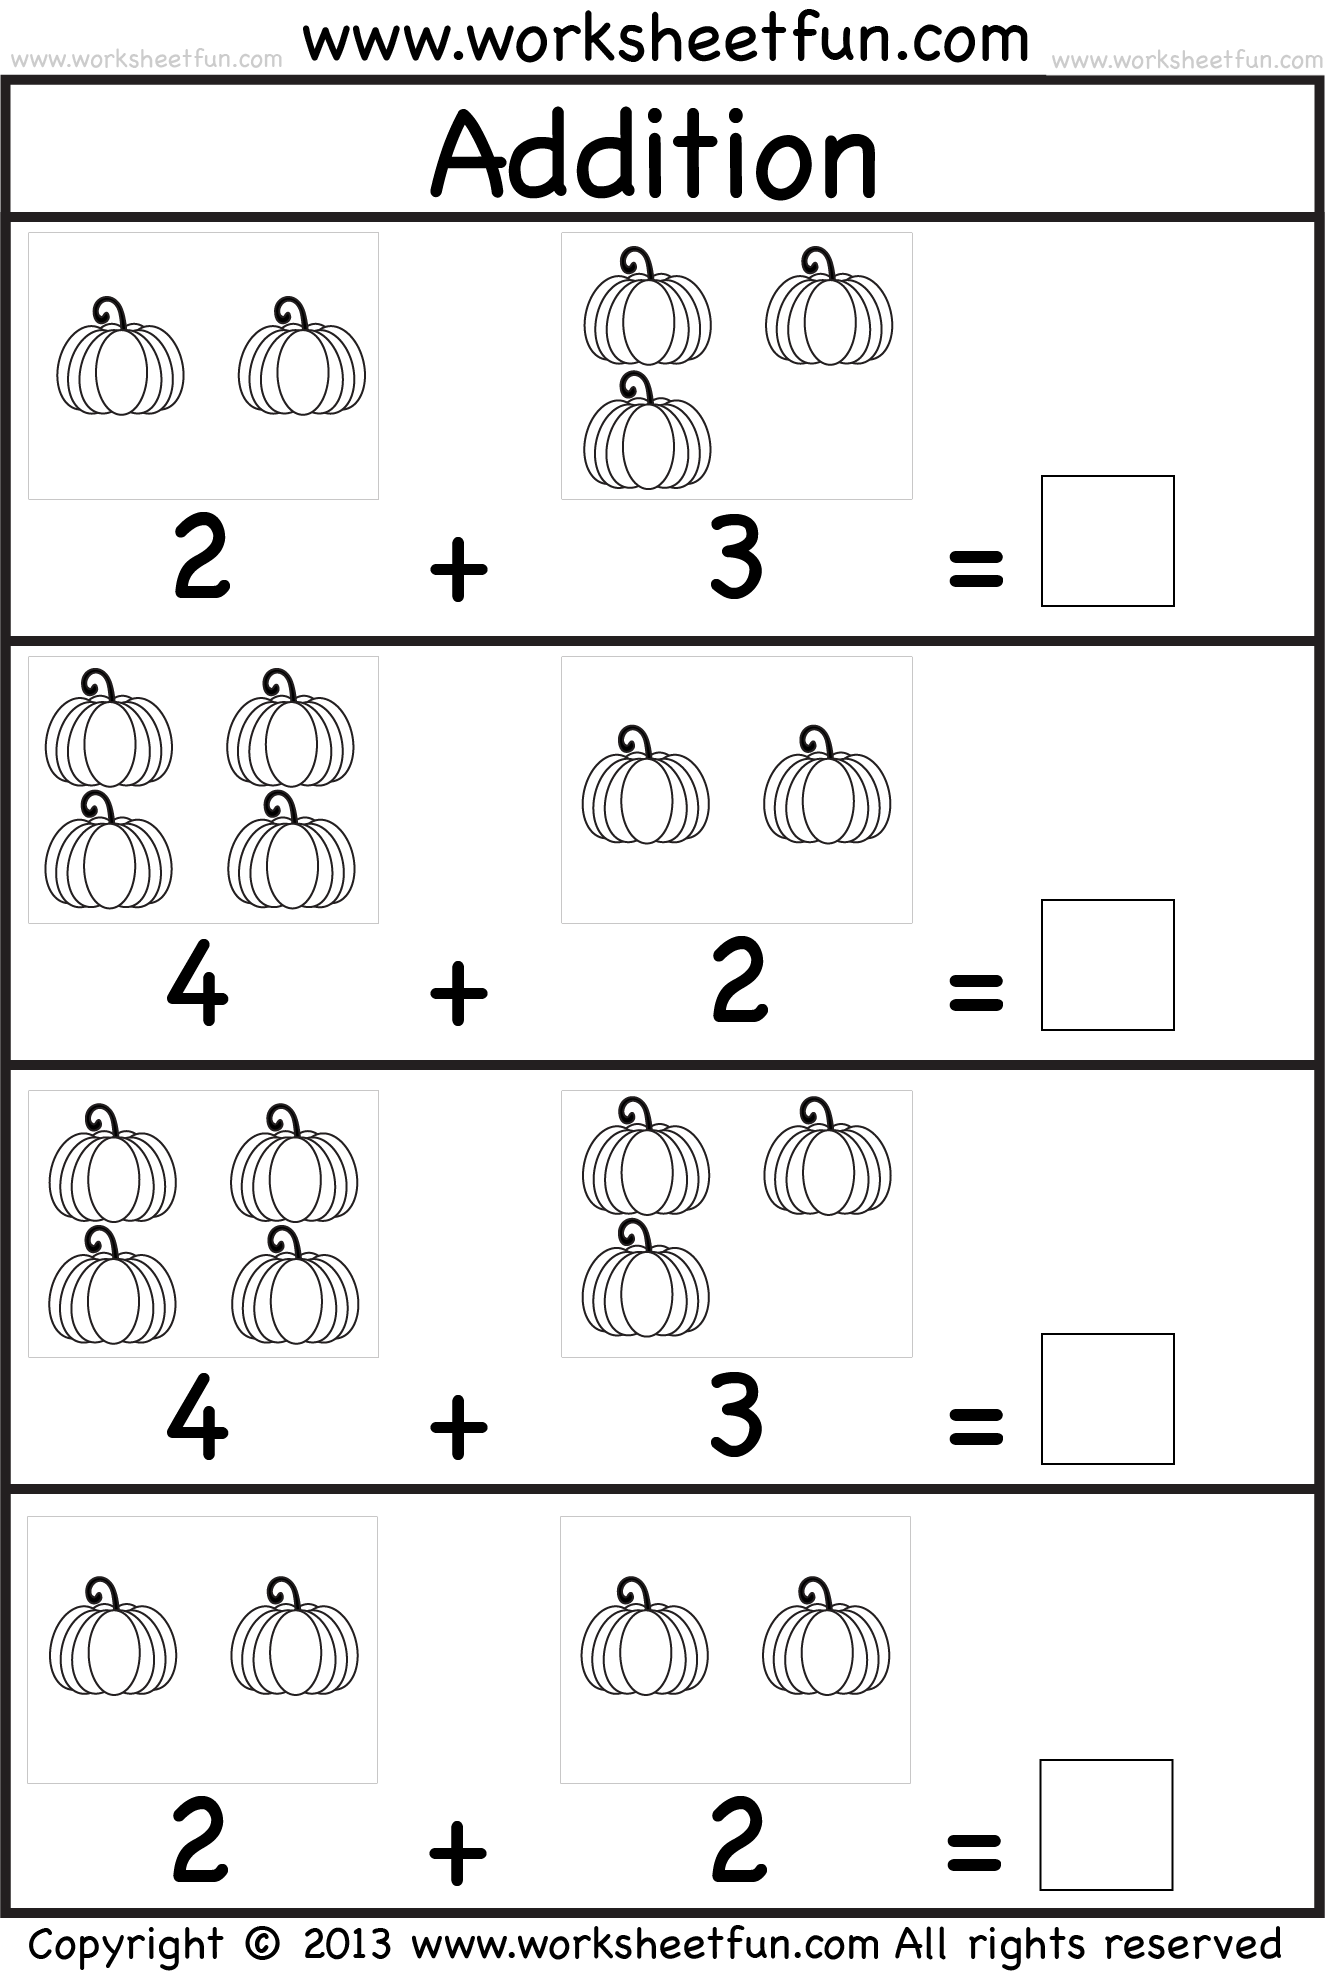 Addition Worksheets Kindergarten Free apexwindowsdoors – Kindergarten Worksheets Addition